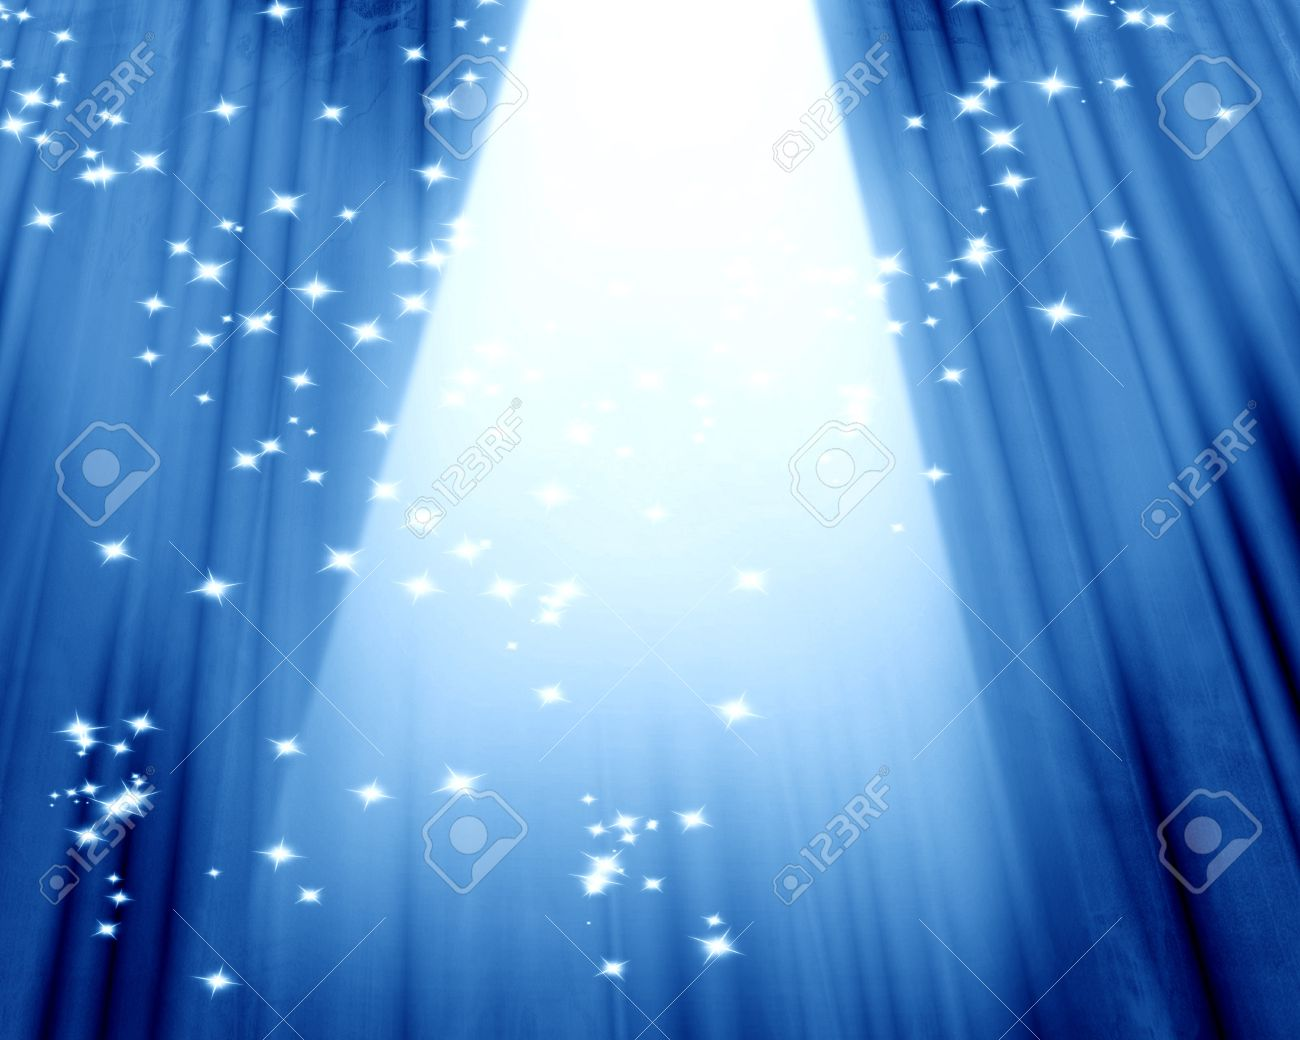 Blue curtain backdrop - Download Light Blue Curtain Background